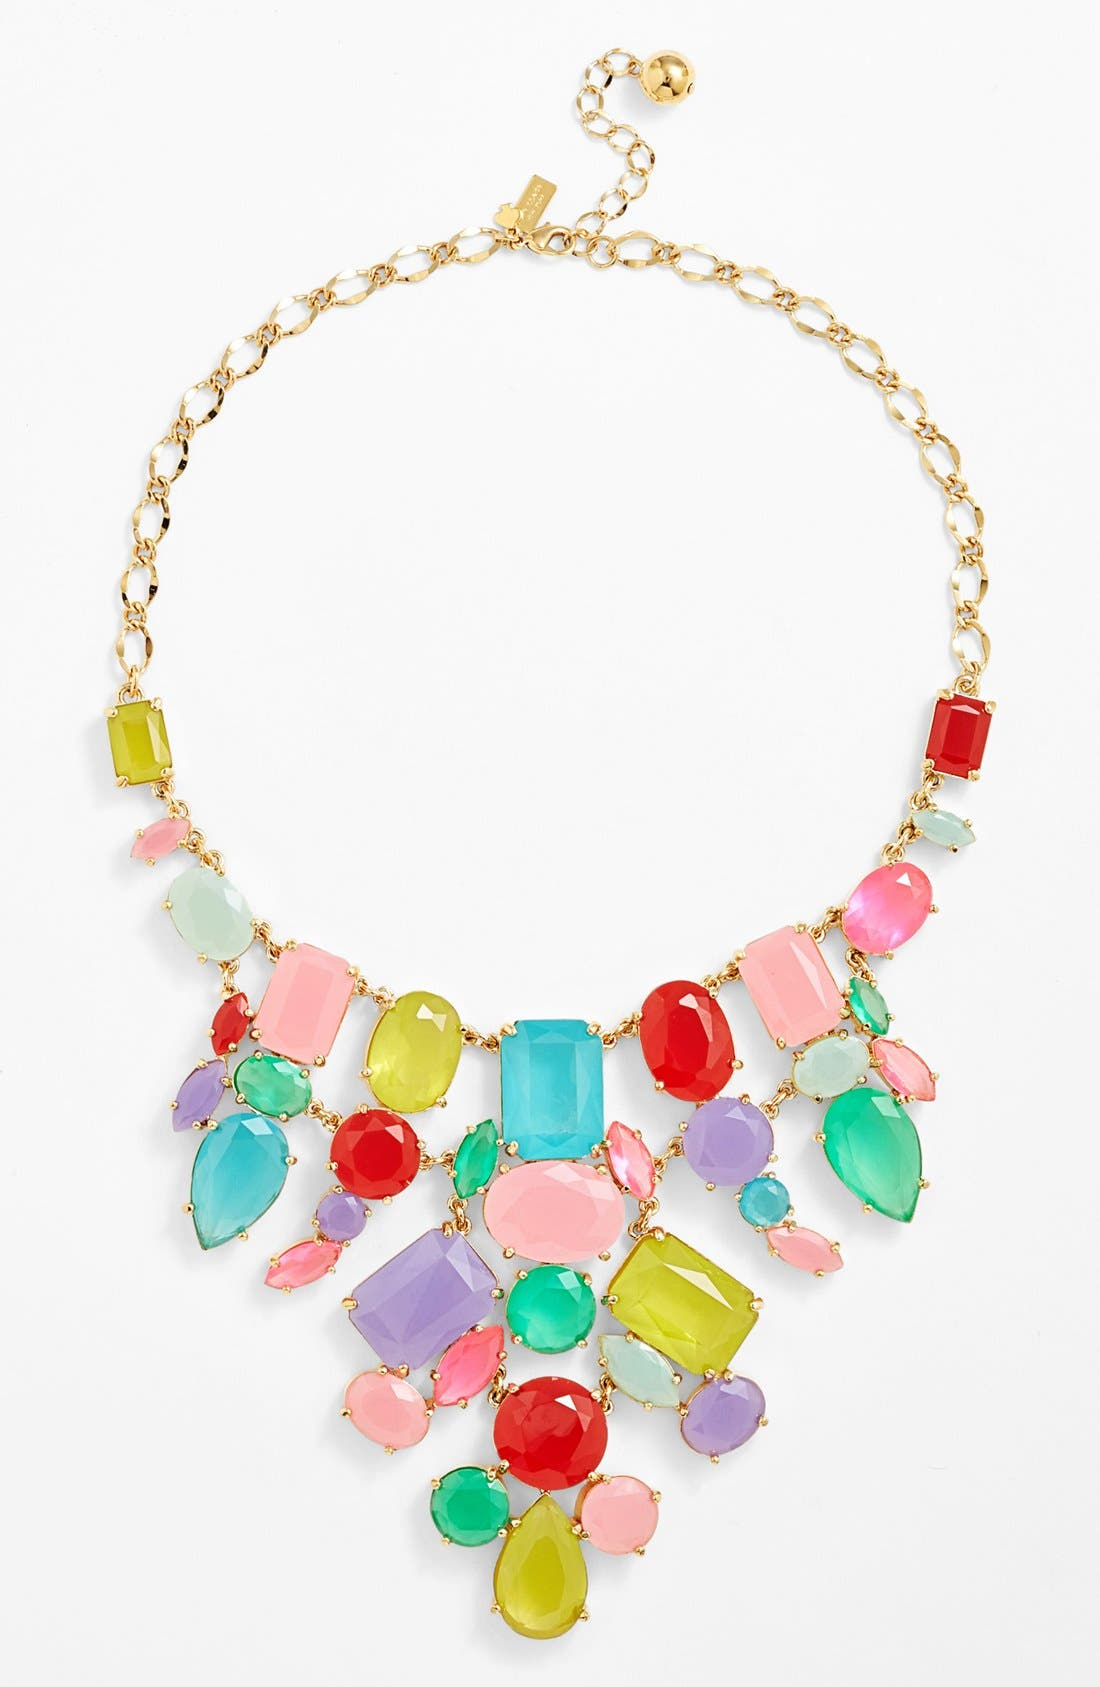 Alternate Image 1 Selected - kate spade new york 'gumdrop gems' mixed stone bib necklace